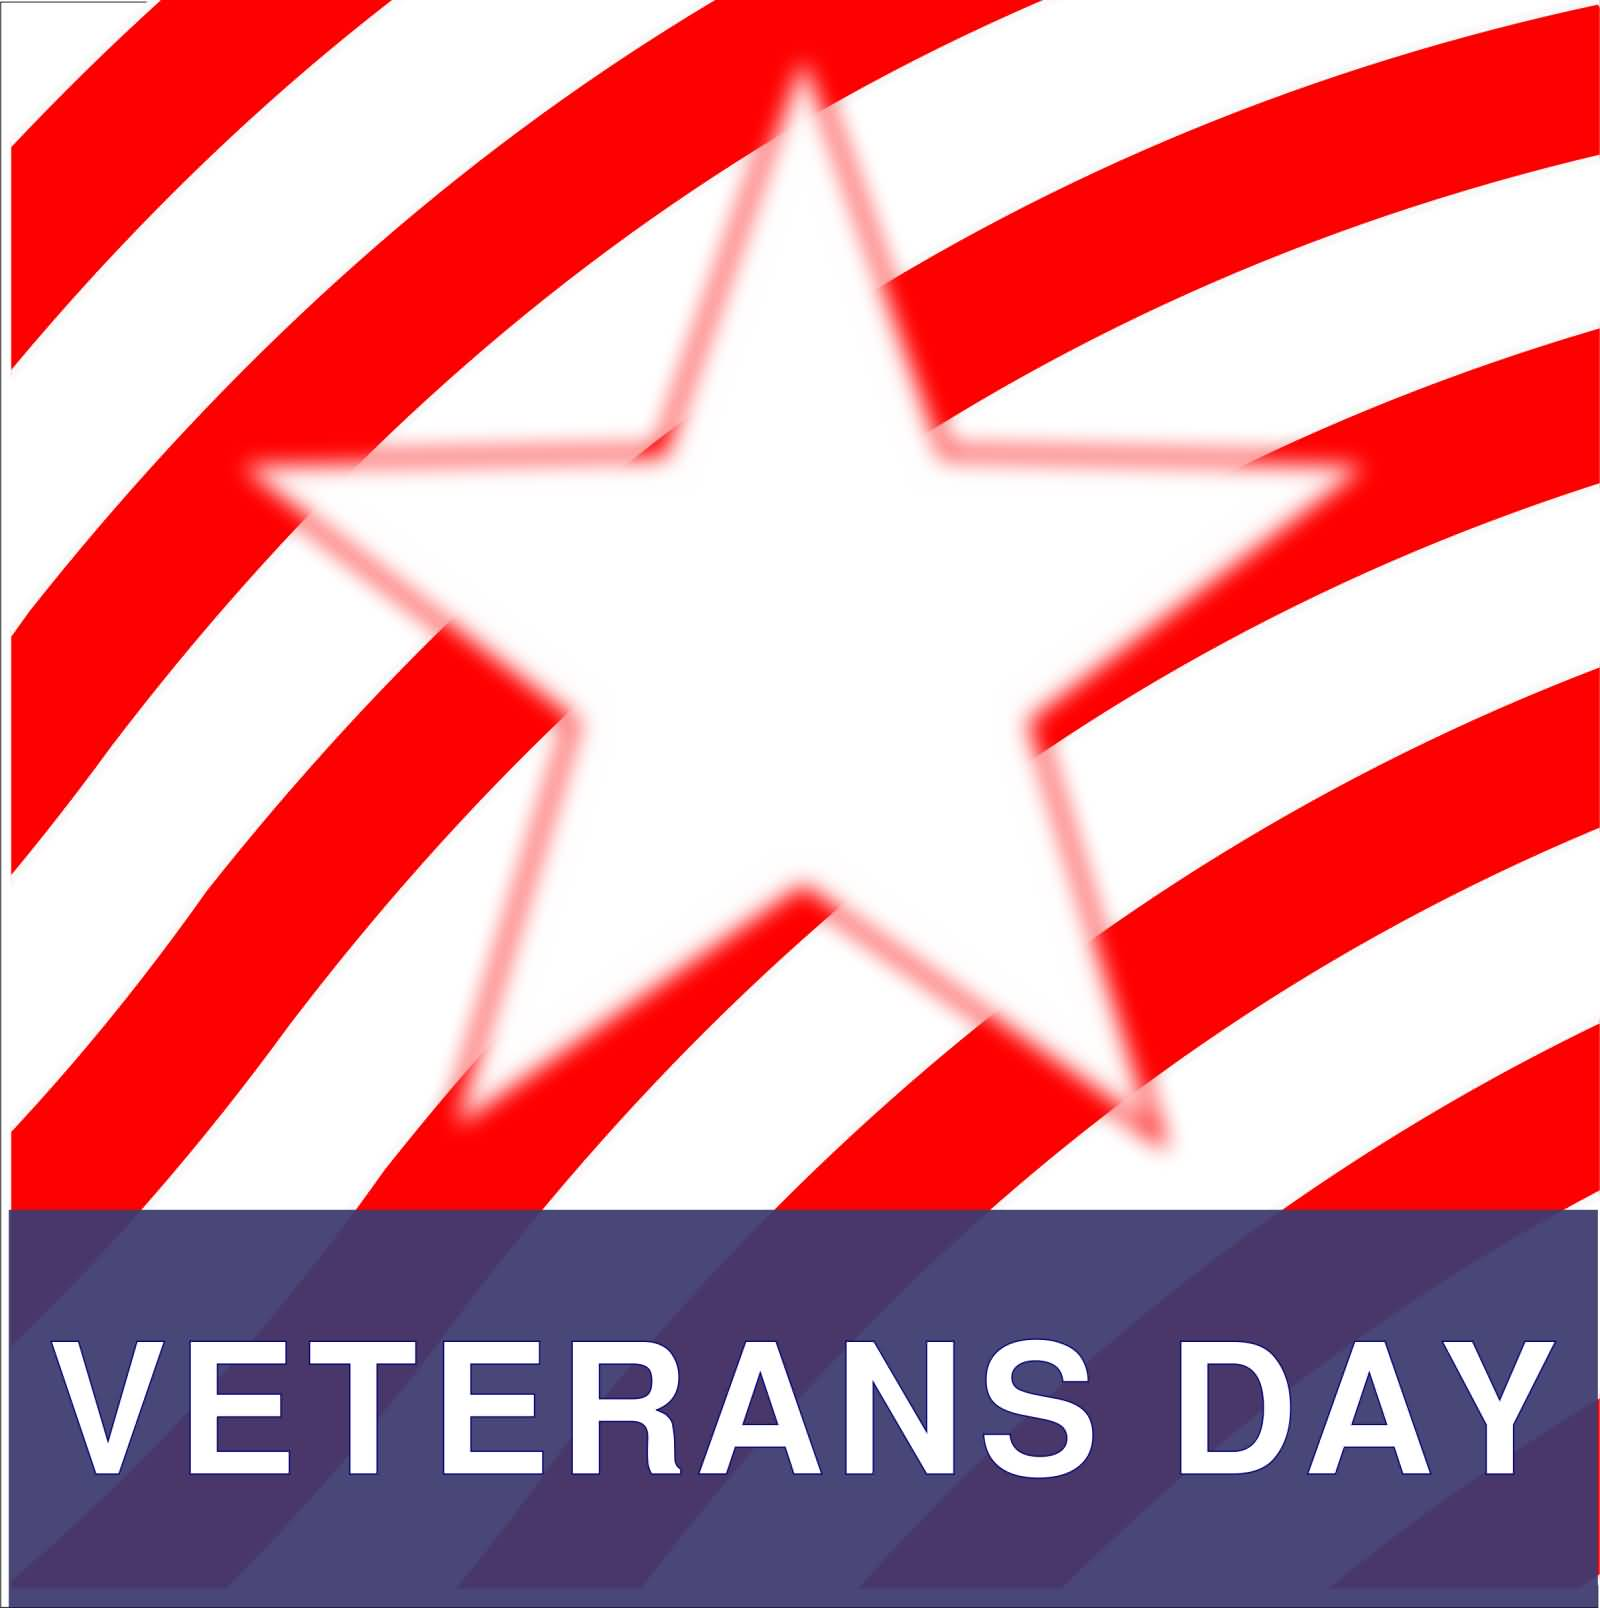 55 beautiful veterans day 2016 greeting pictures veterans day greetings 2016 kristyandbryce Choice Image